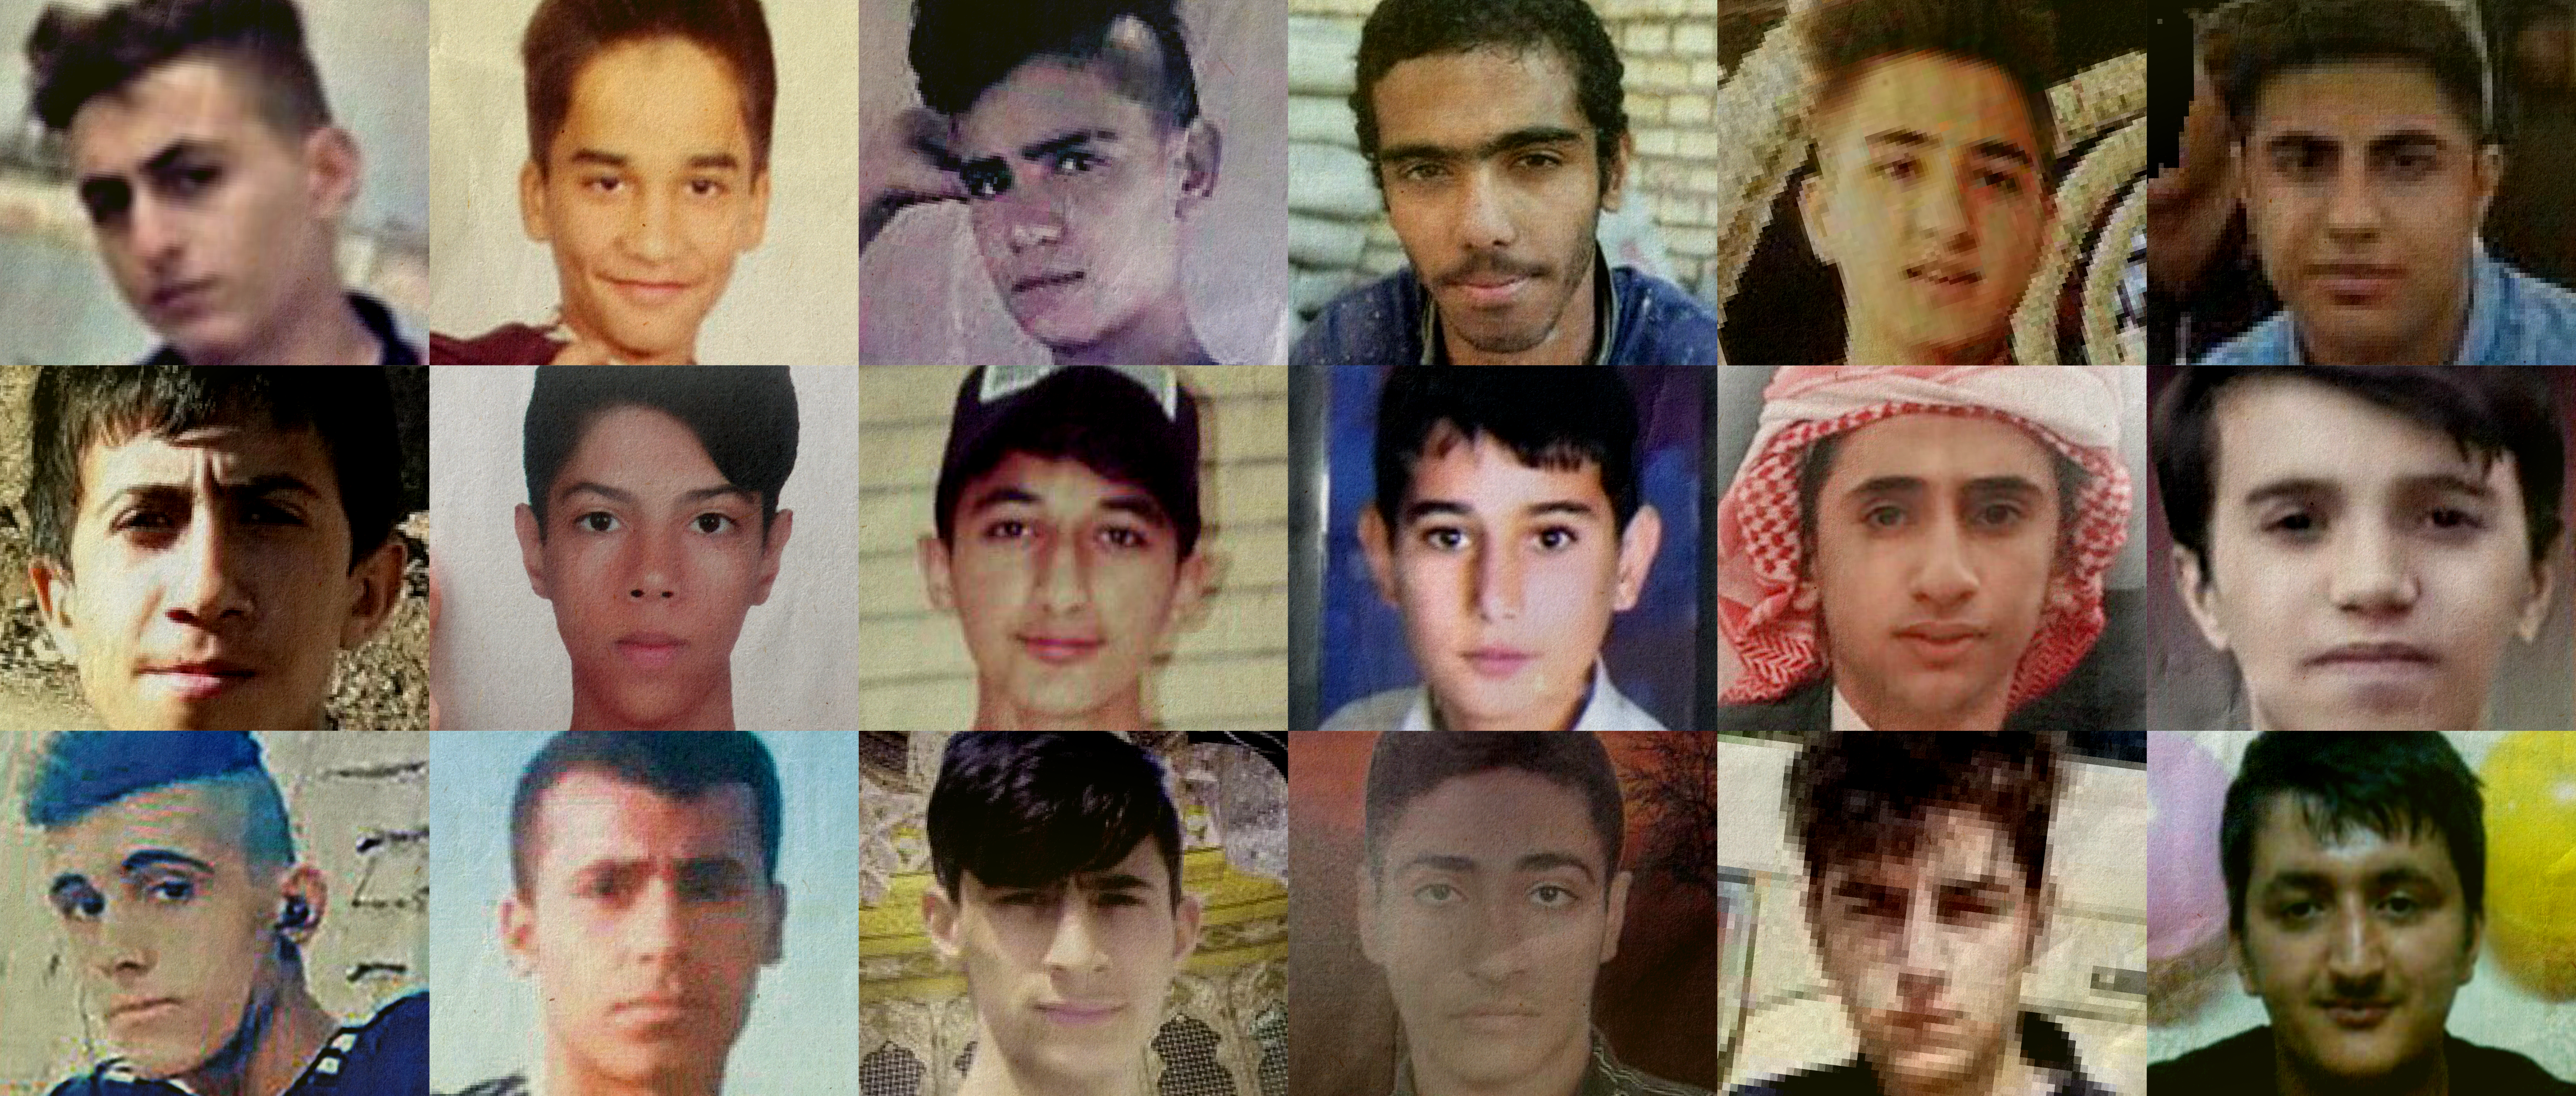 Iran: At least 23 children killed by security forces in November protests – new evidence